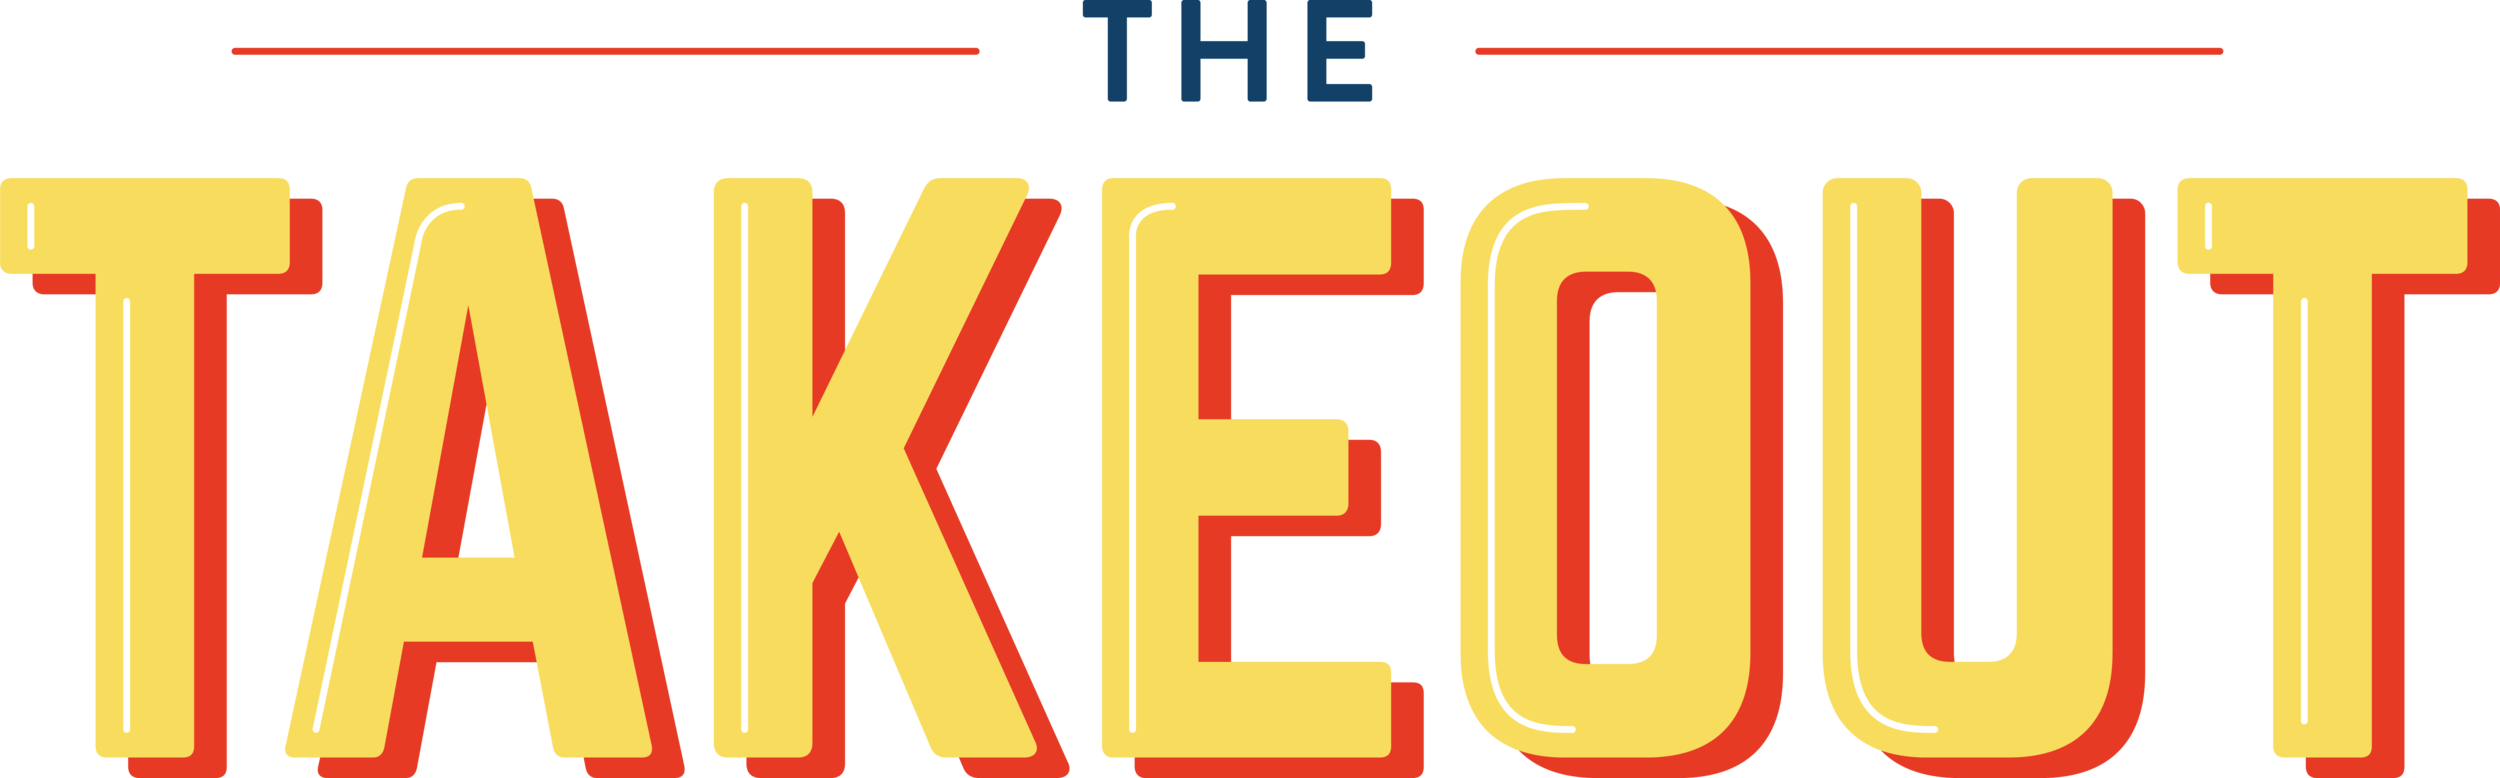 TheTakeout_Logo.png